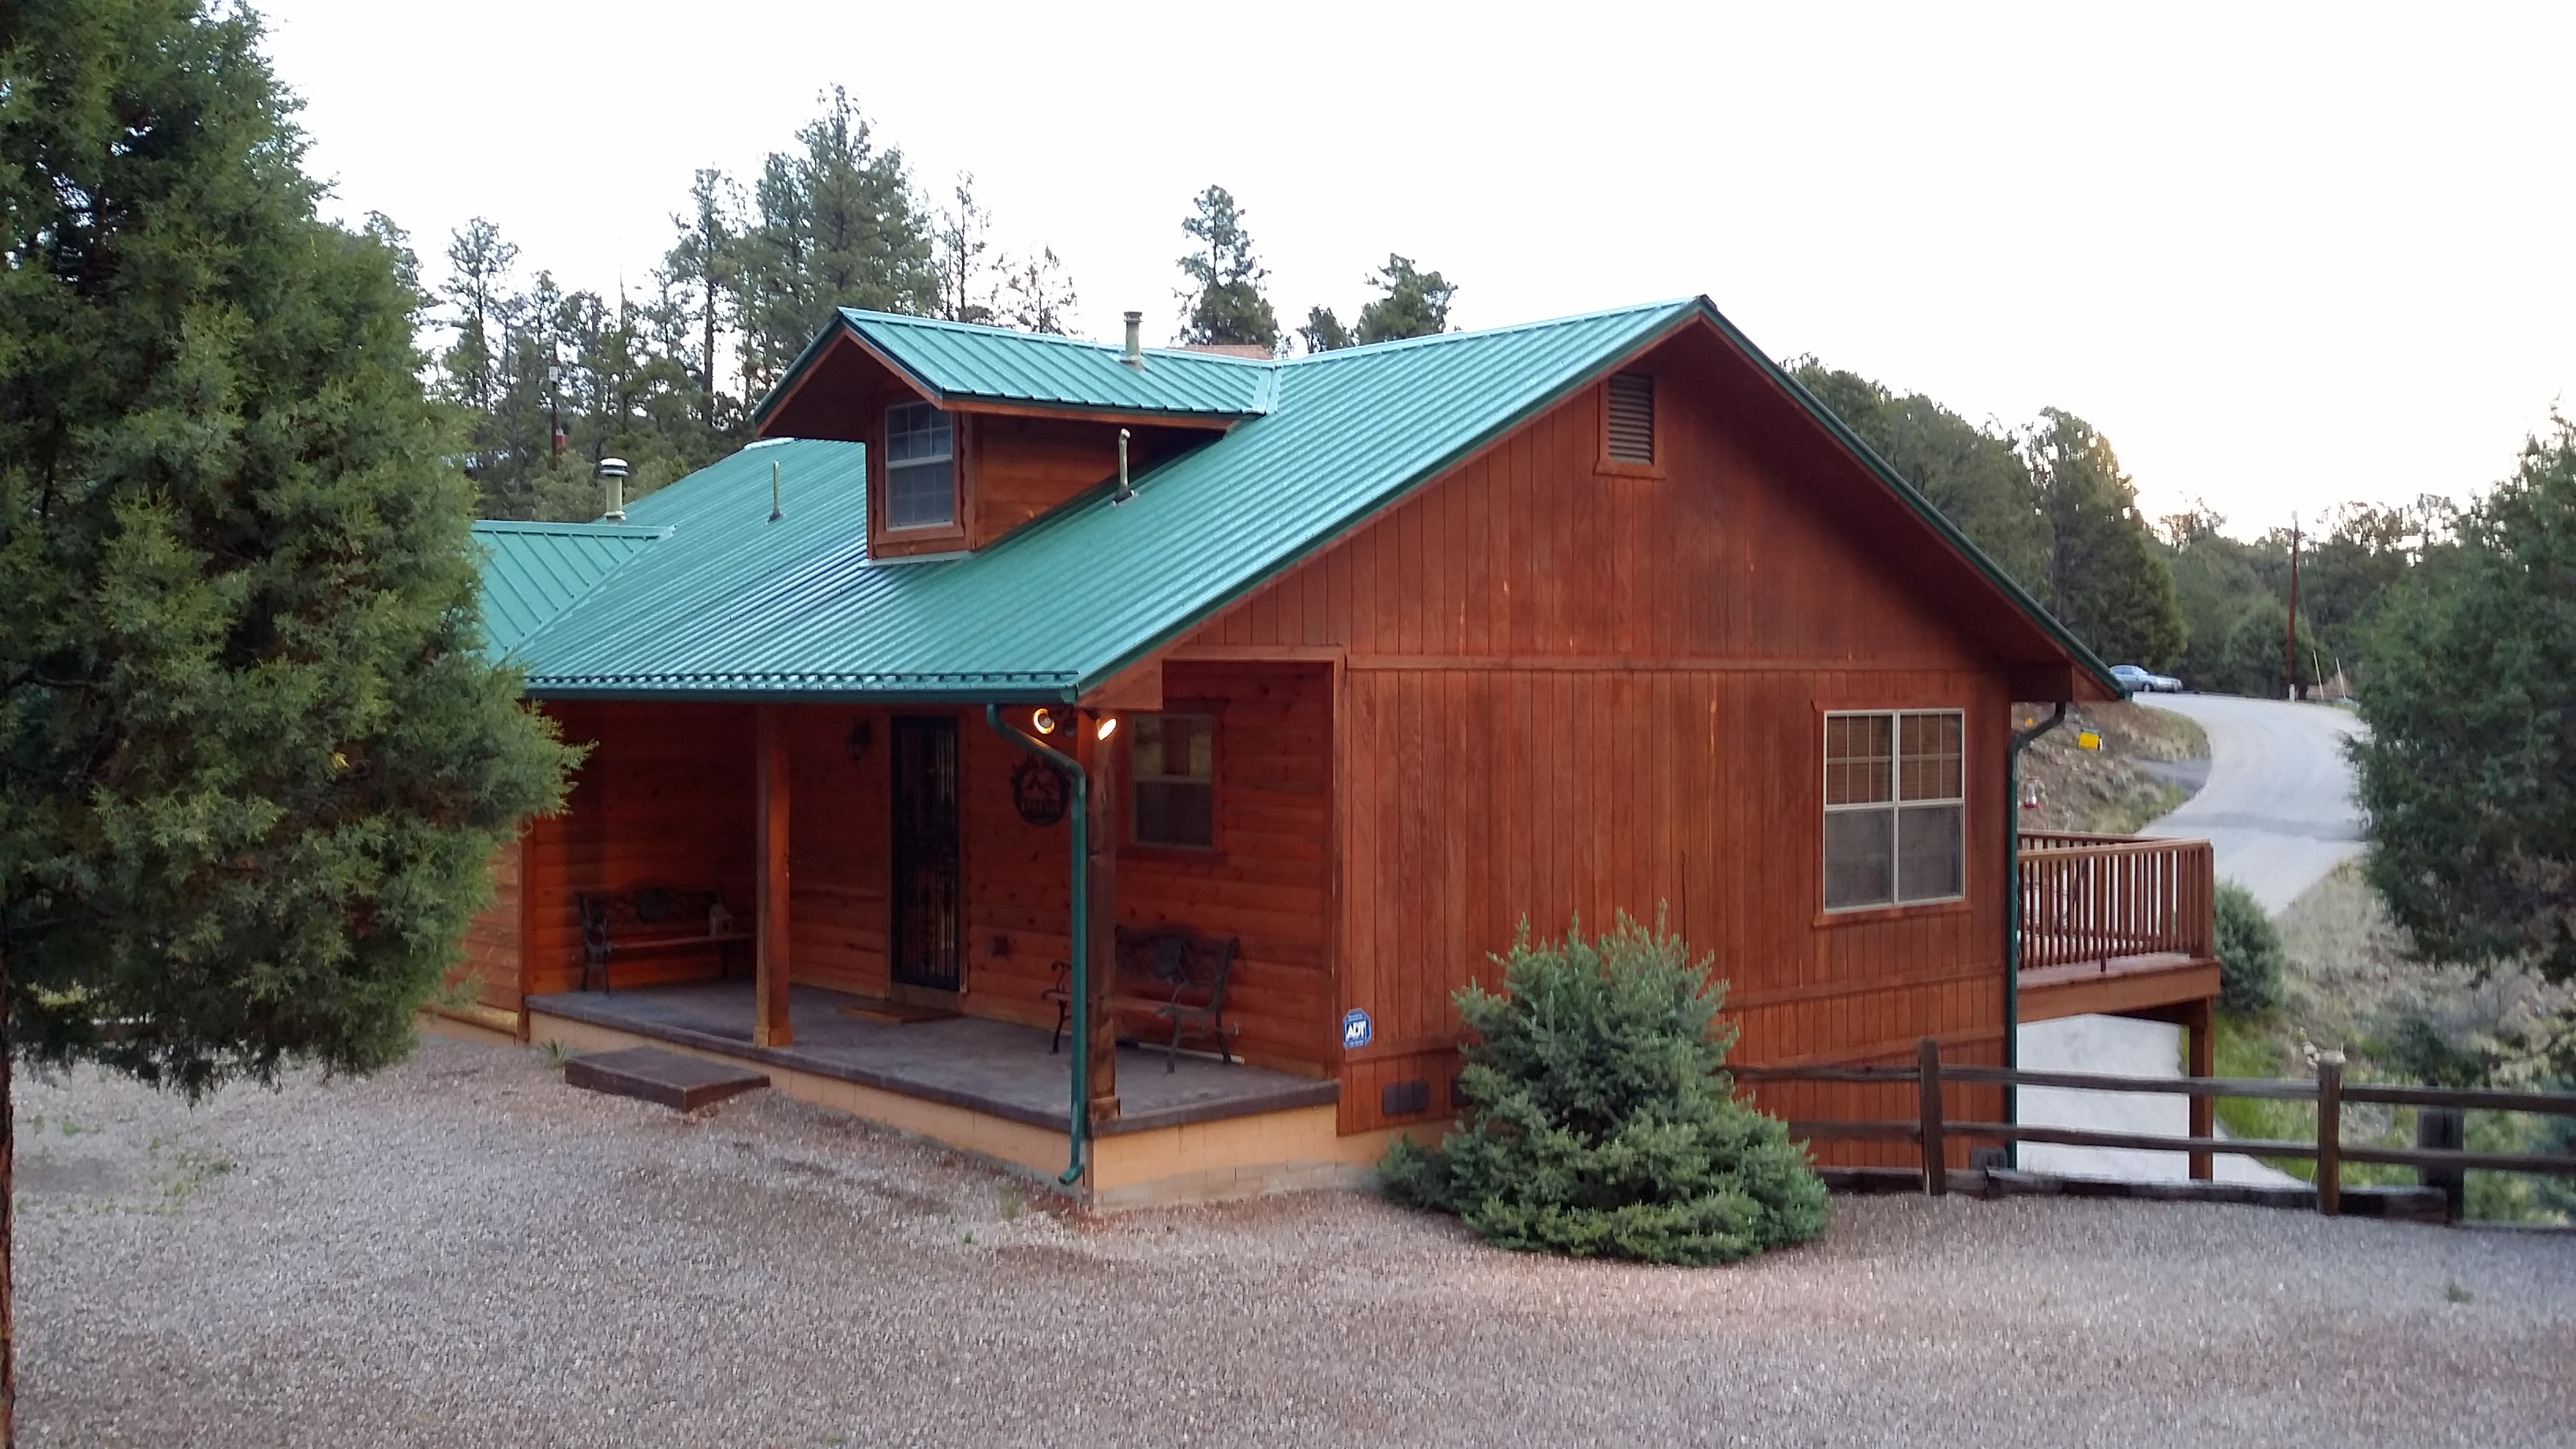 cabins best detail listing content removed pc of mexico front new ruidoso